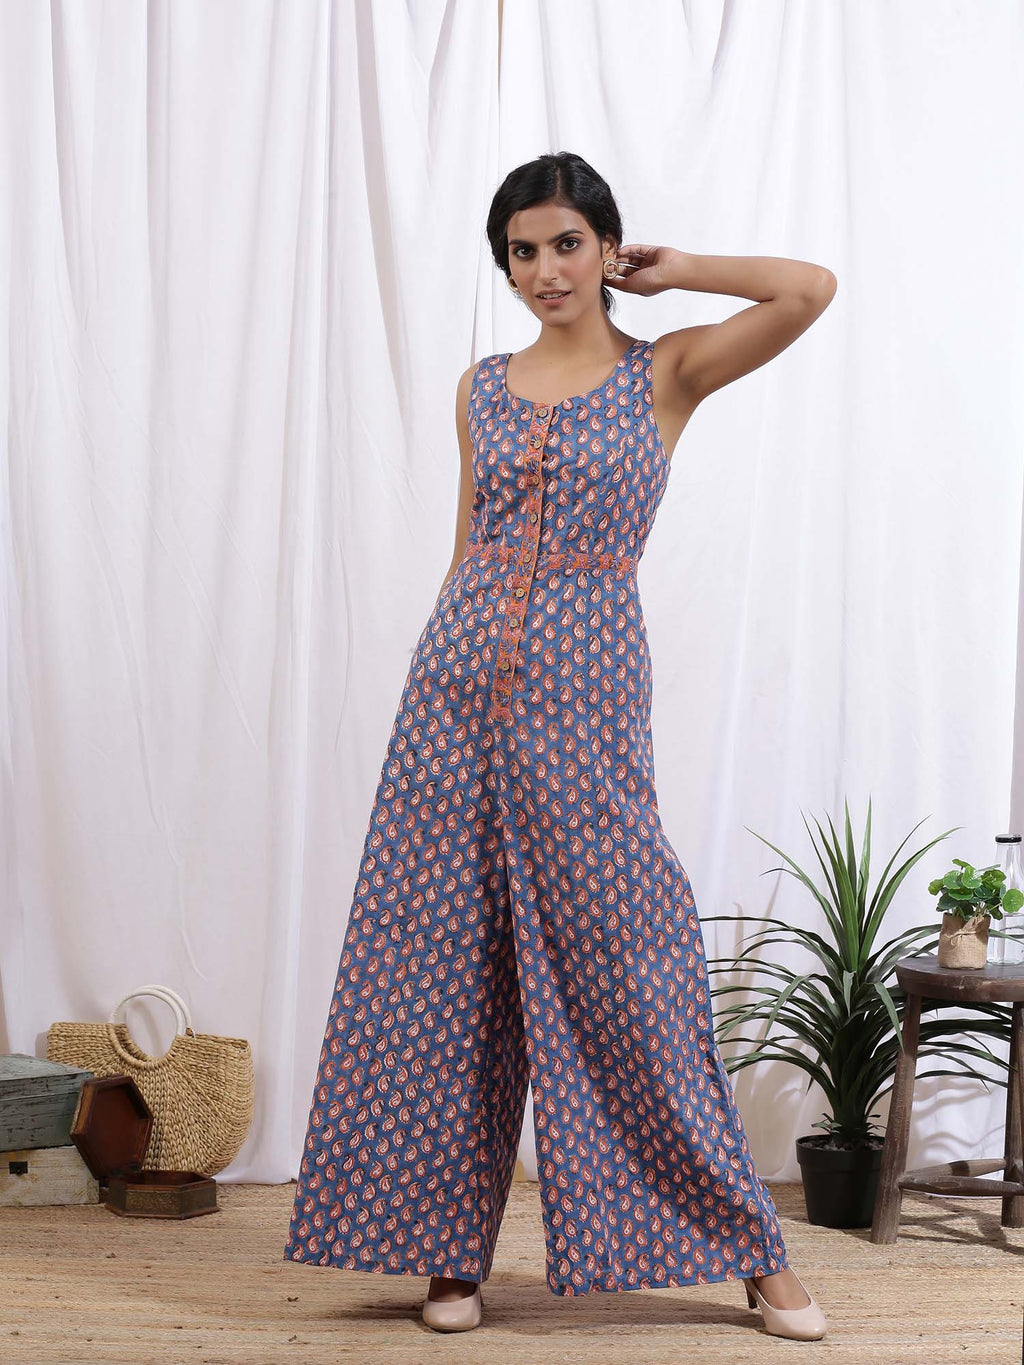 Blue Colour Paisley Pop Jumpsuit - Riviera Closet